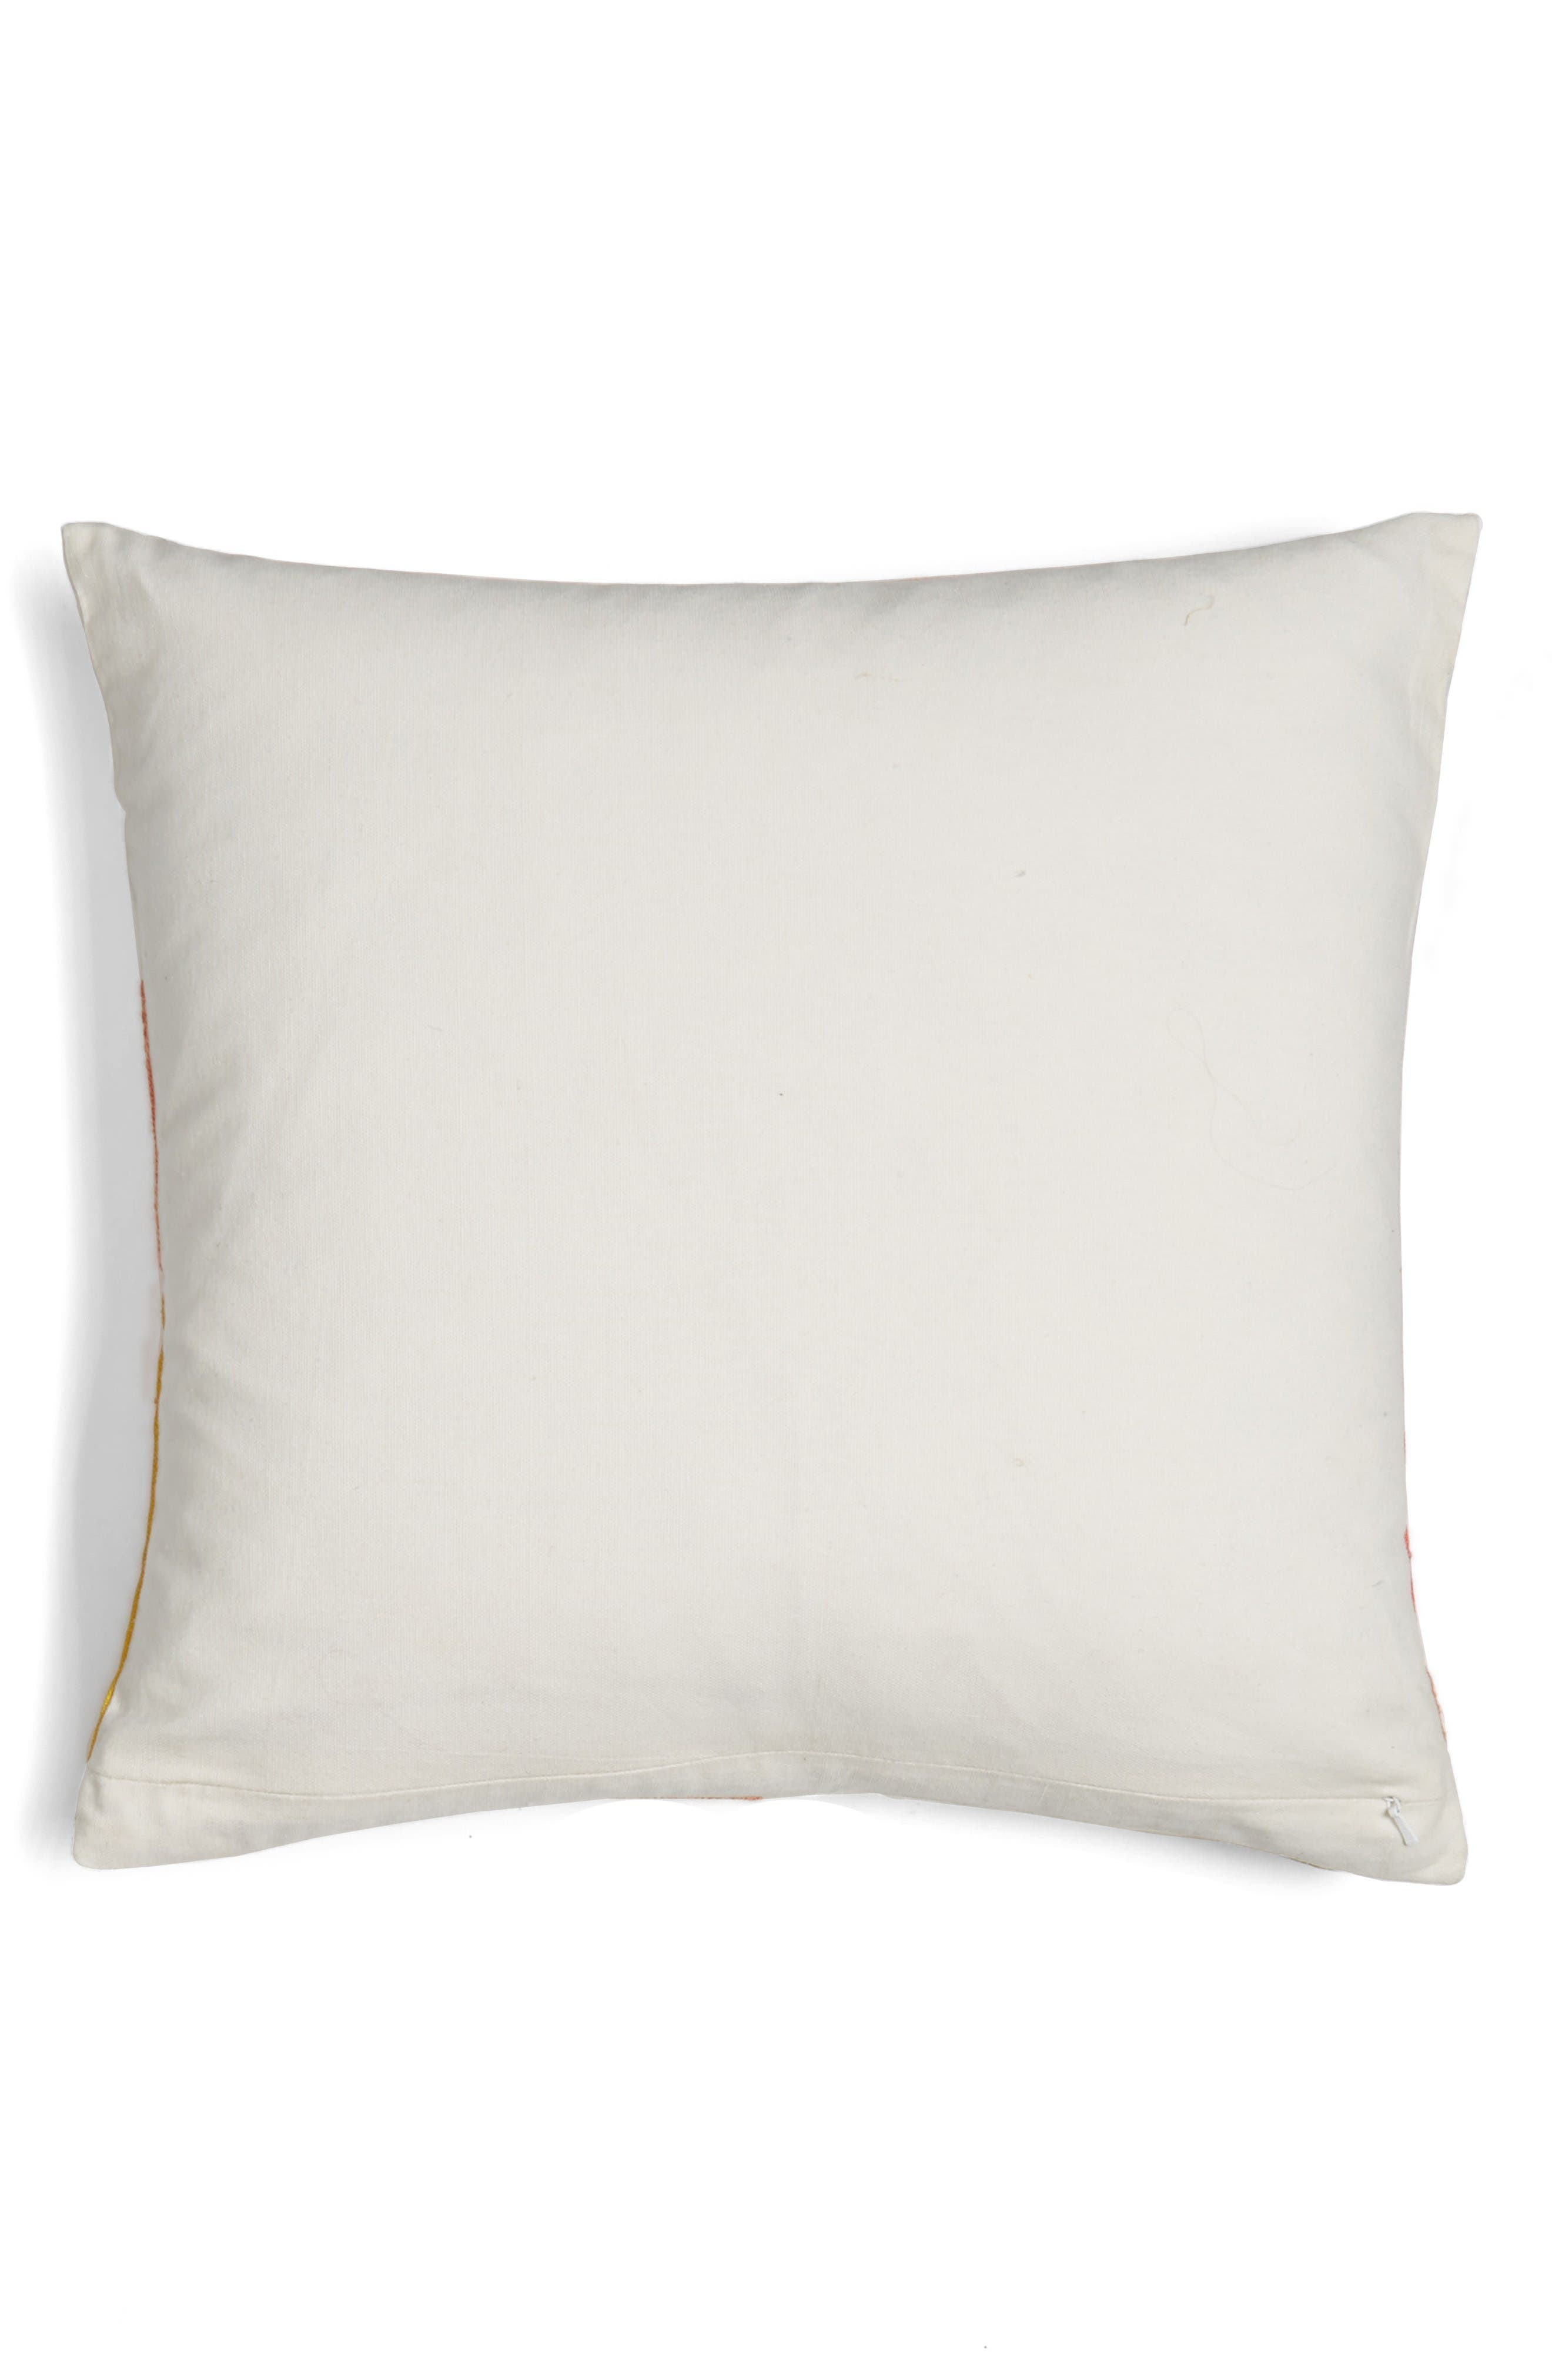 Alternate Image 2  - Nordstrom at Home Kilm Graphic Accent Pillow